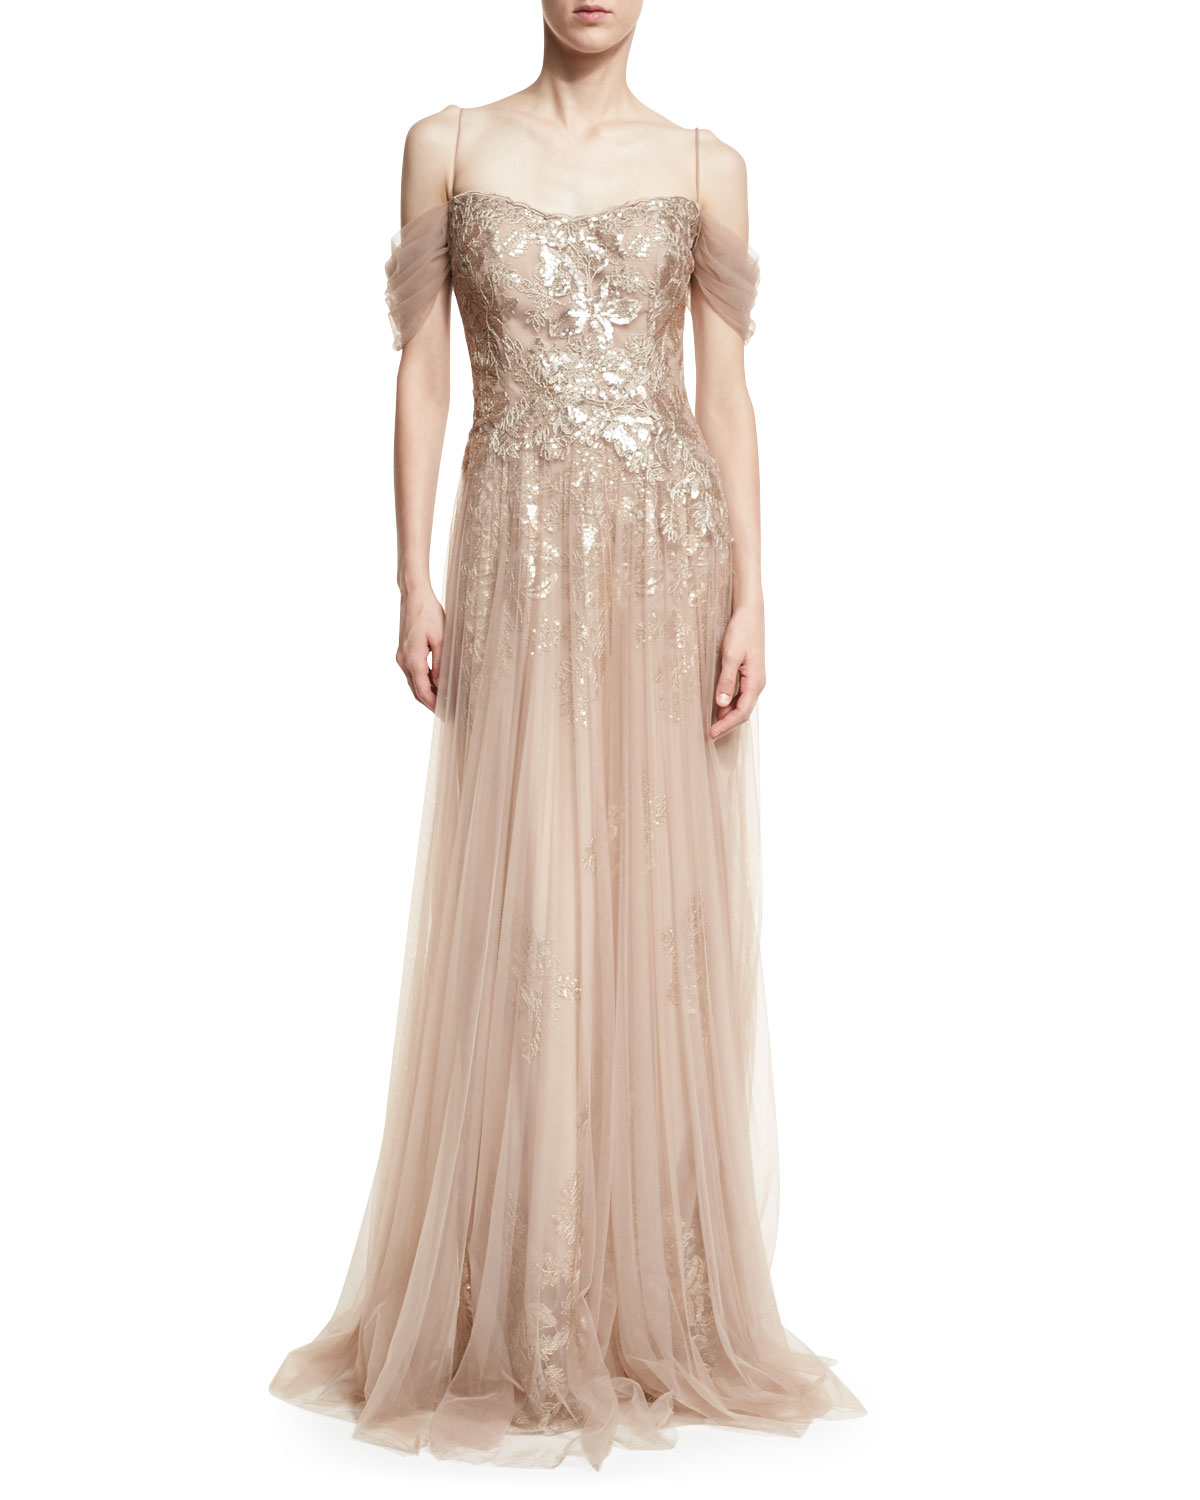 Rickie Freeman for Teri Jon Sequin Lace Evening Gown w/ Tulle ...